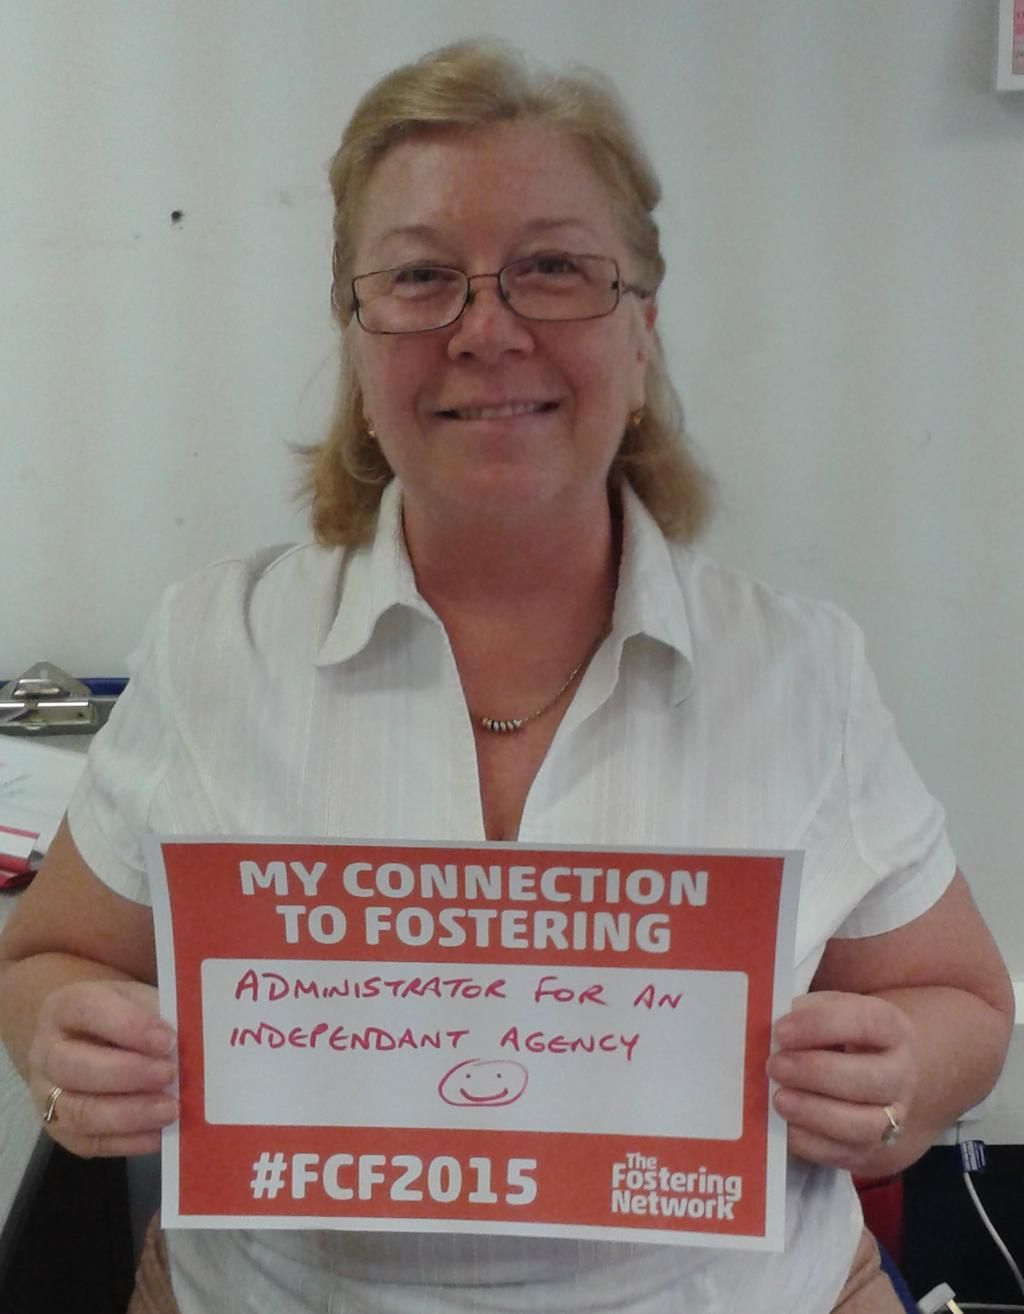 Fcf2015 the fosters foster care connection